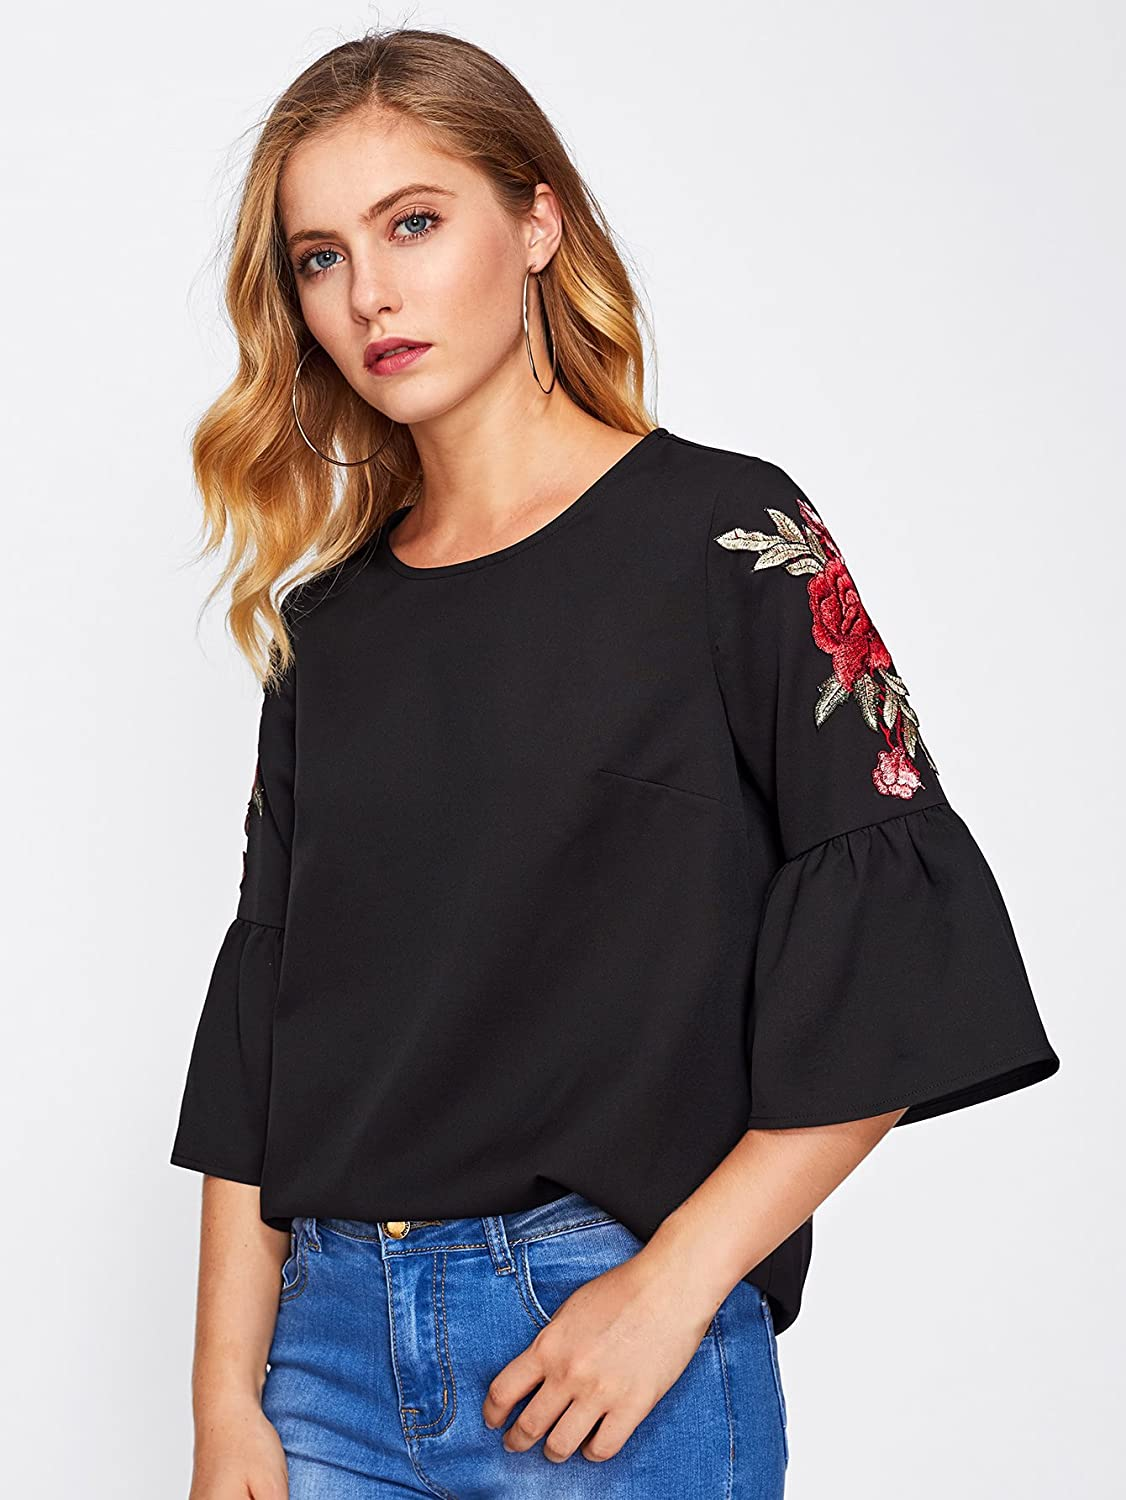 8a9210e45a Floerns Women s Floral Embroidery Loose Blouse Bell Sleeve Top at Amazon  Women s Clothing store